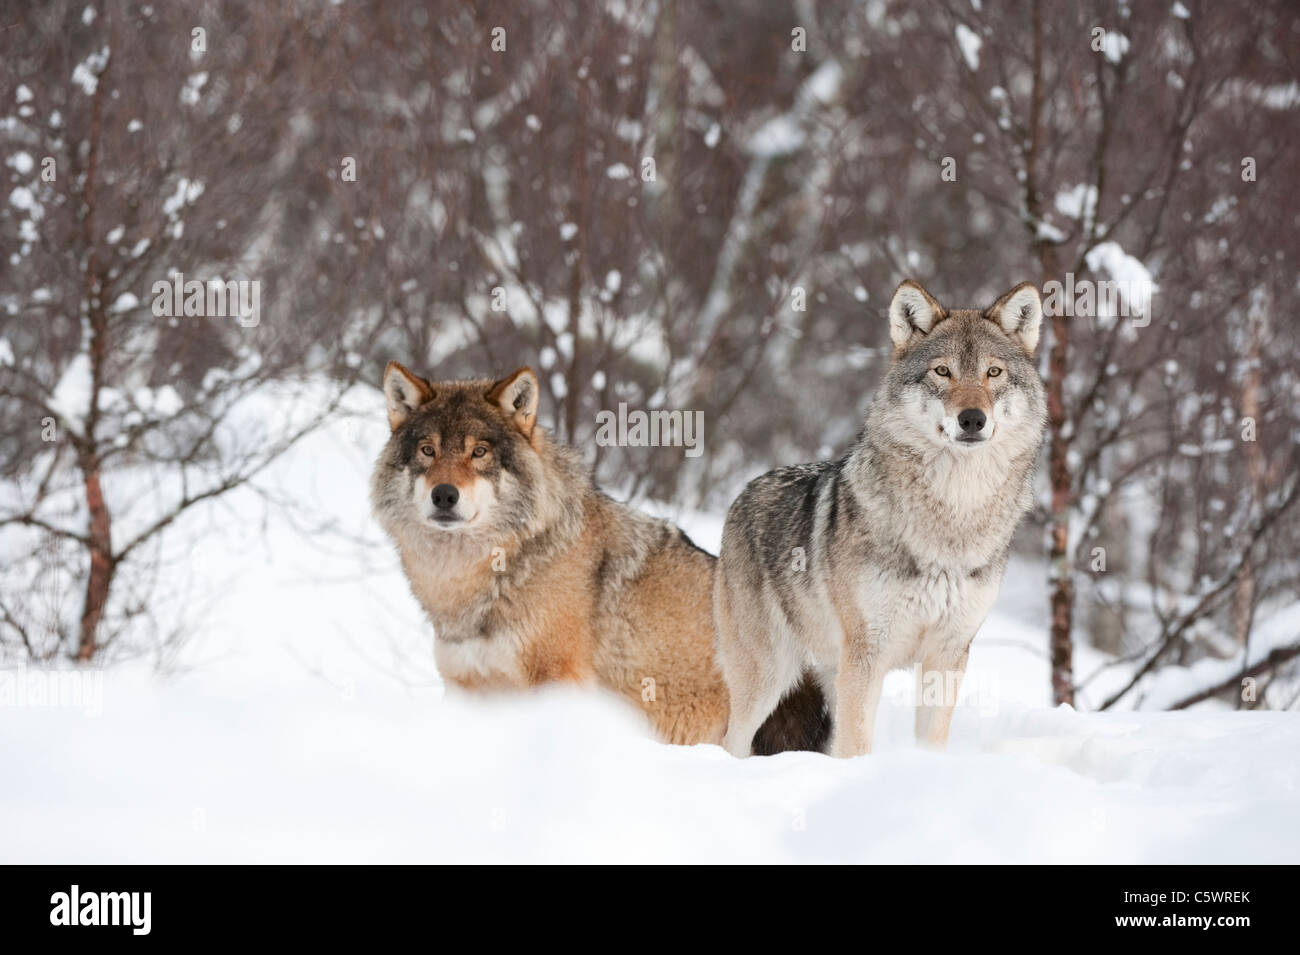 European Grey Wolf (Canis lupus), alpha male and female in winter (taken in controlled conditions). Norway. - Stock Image